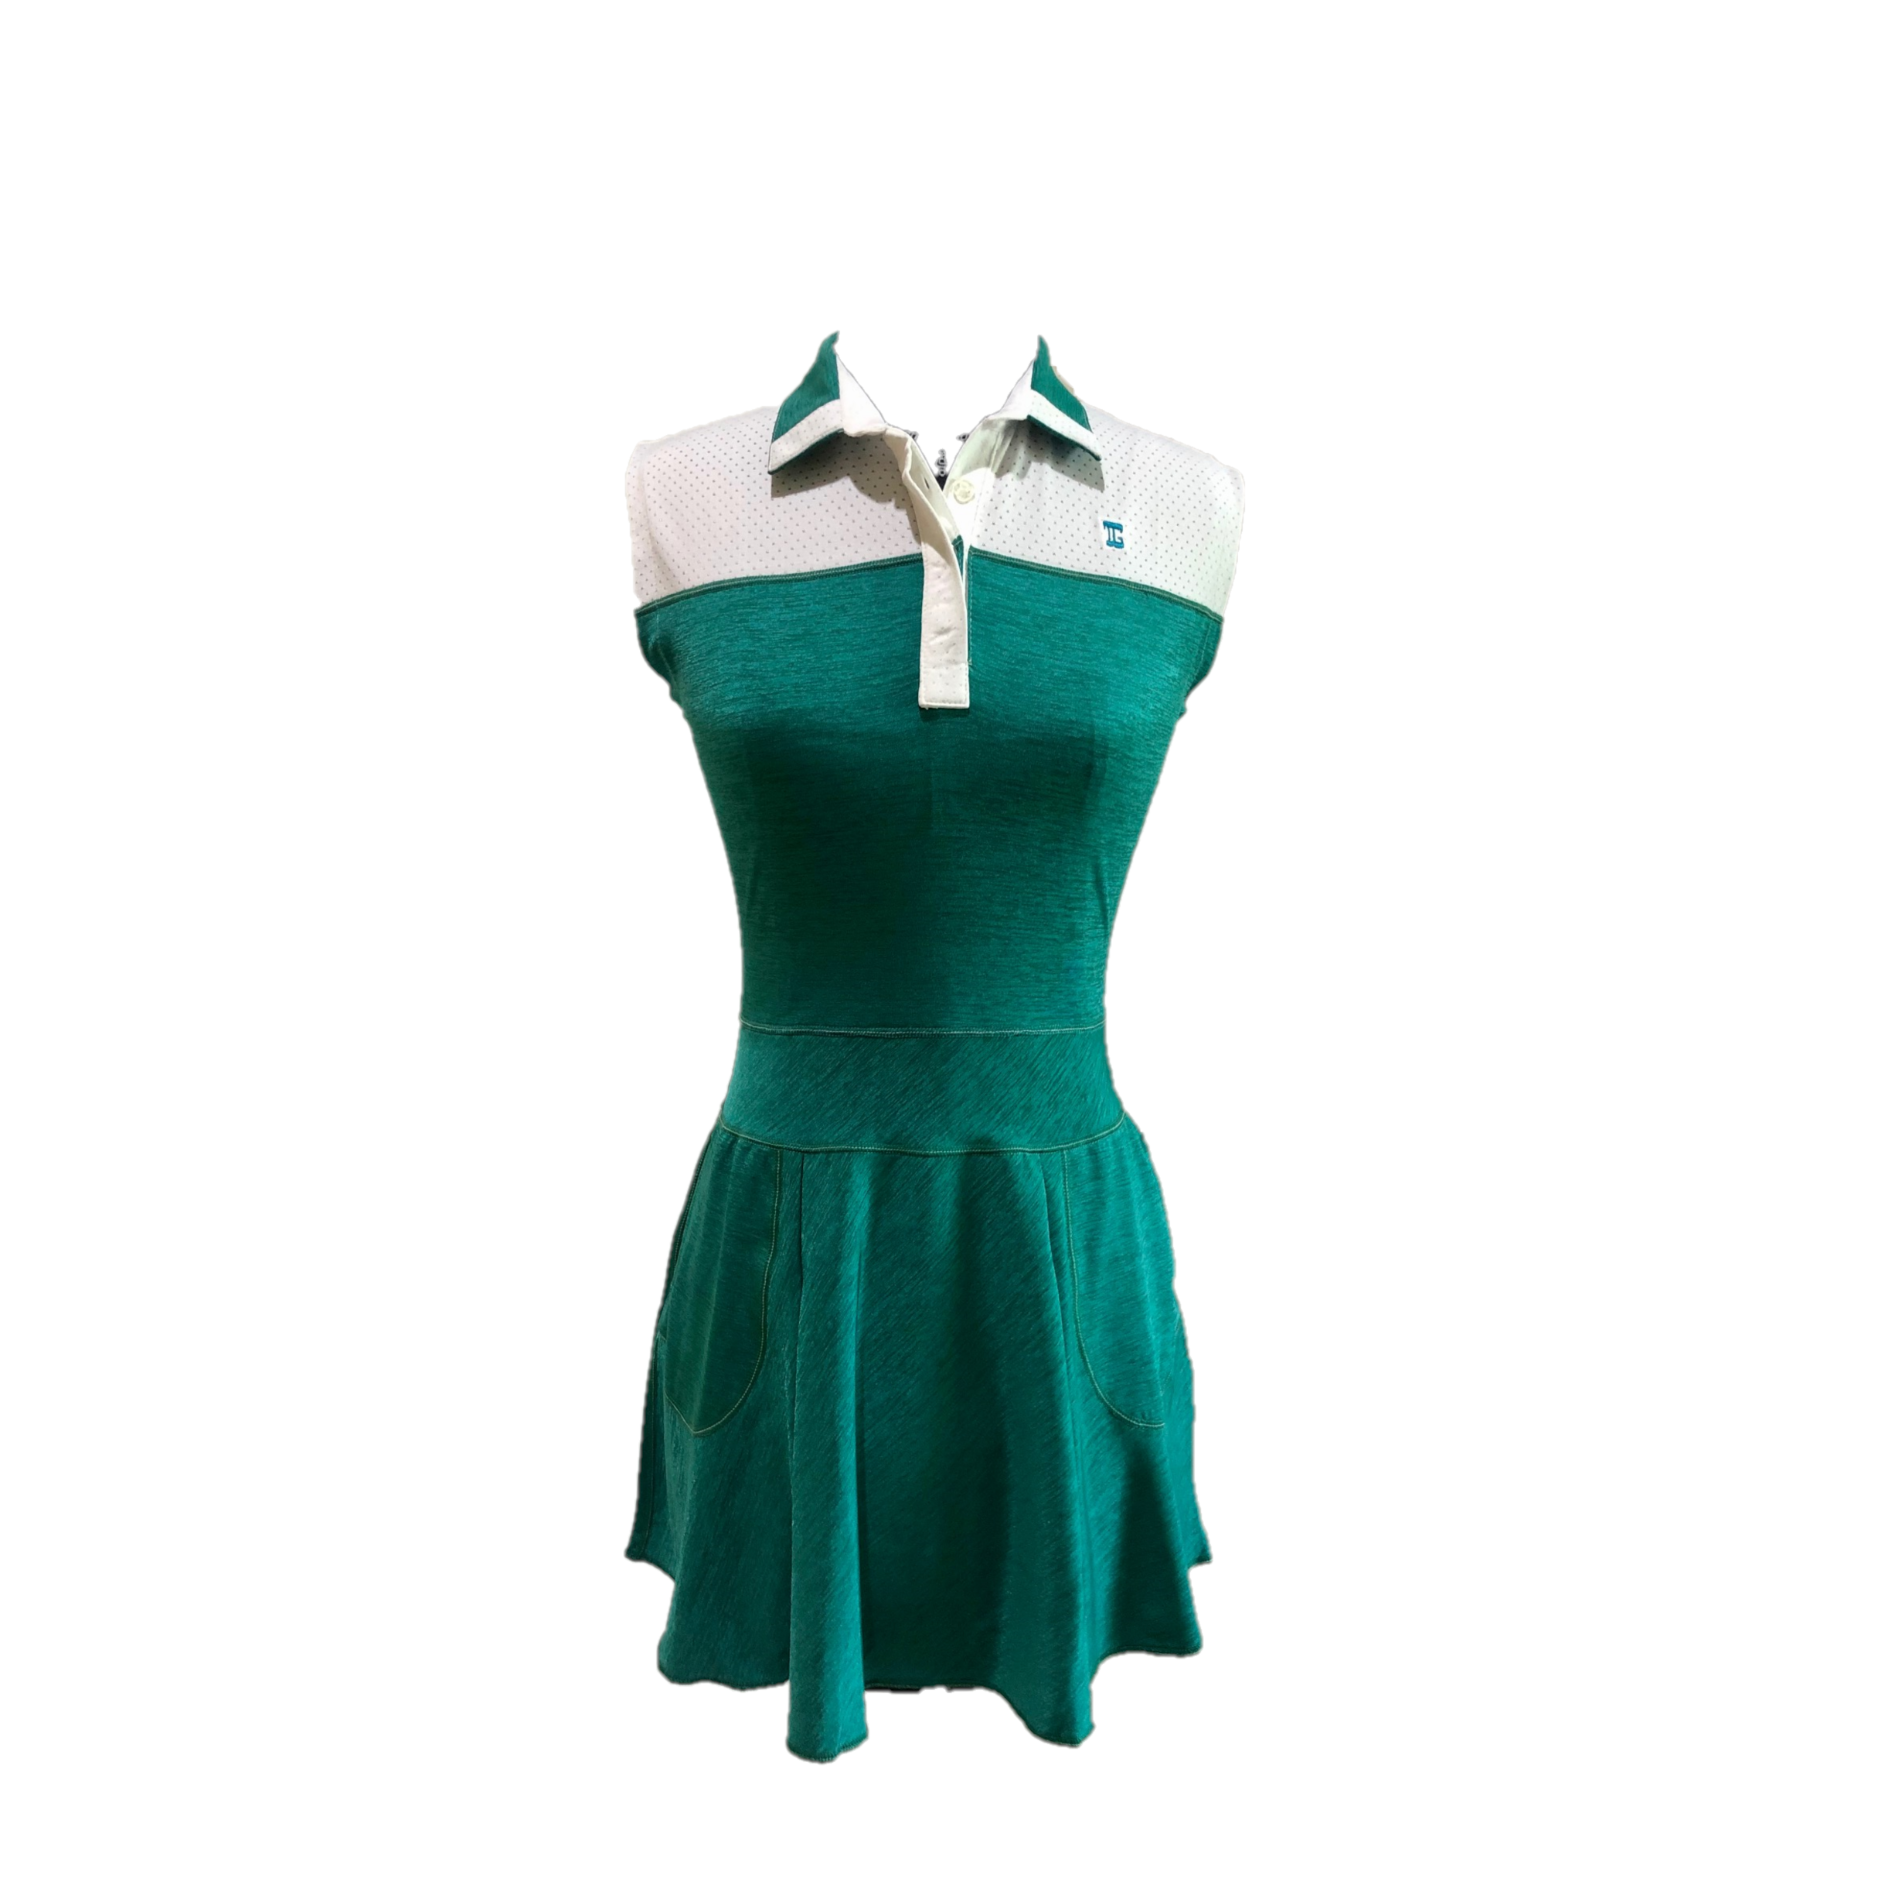 GD-013    Golf Dress Sleeveless Mid Green Textured Cloth White Shoulder Panel And Green & White Collar / Neck Trim